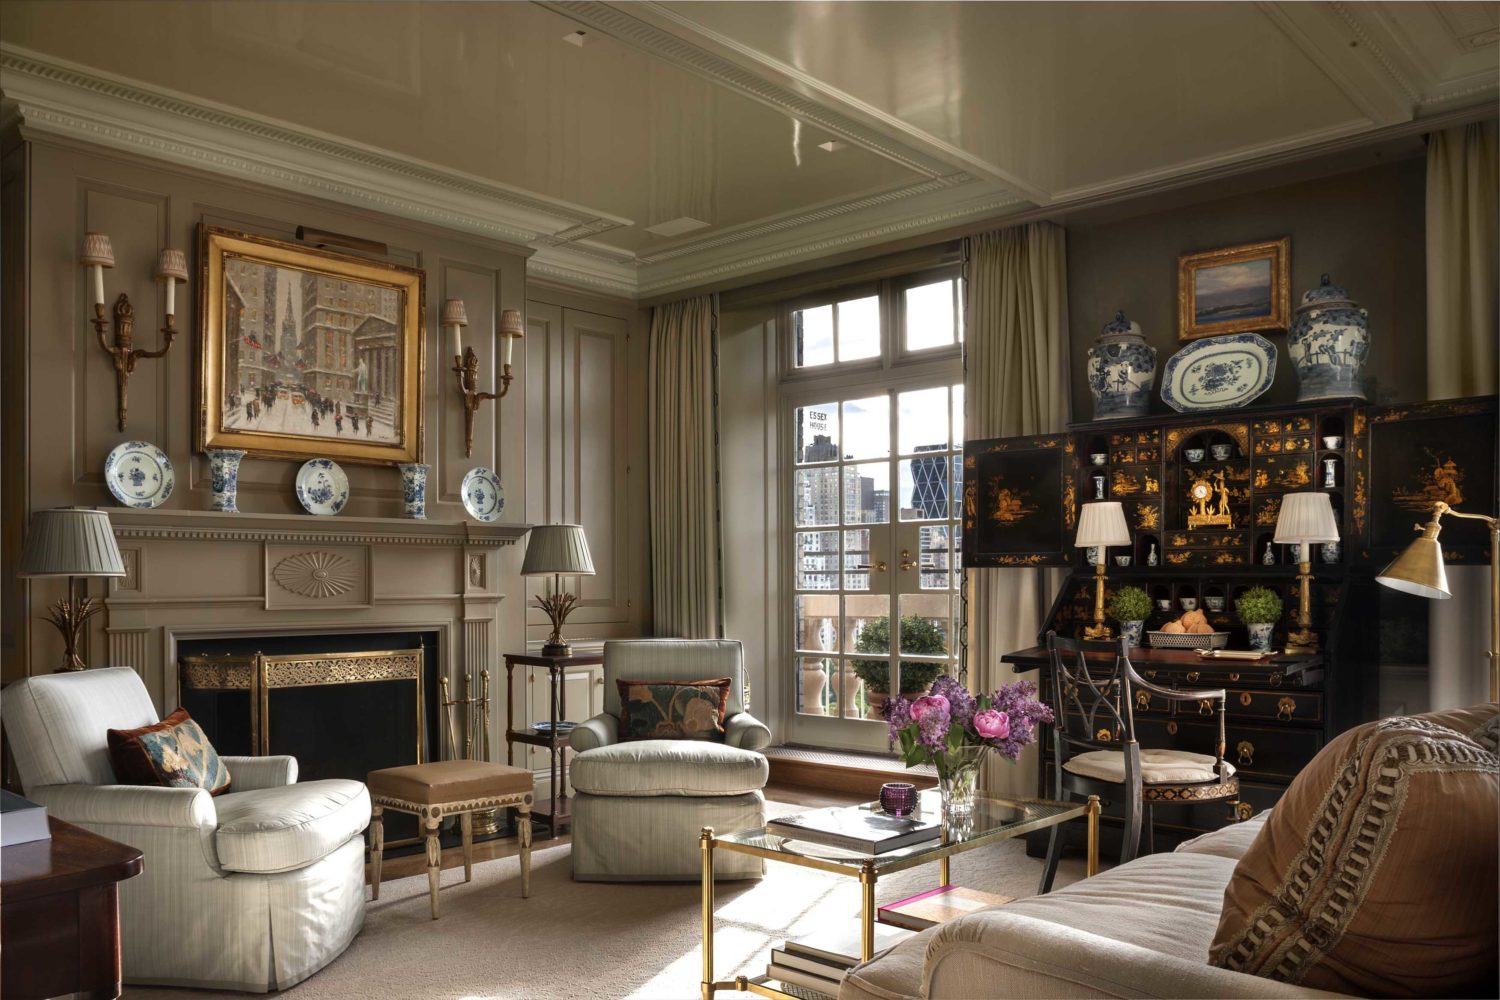 John b murray architect for Nyc pied a terre